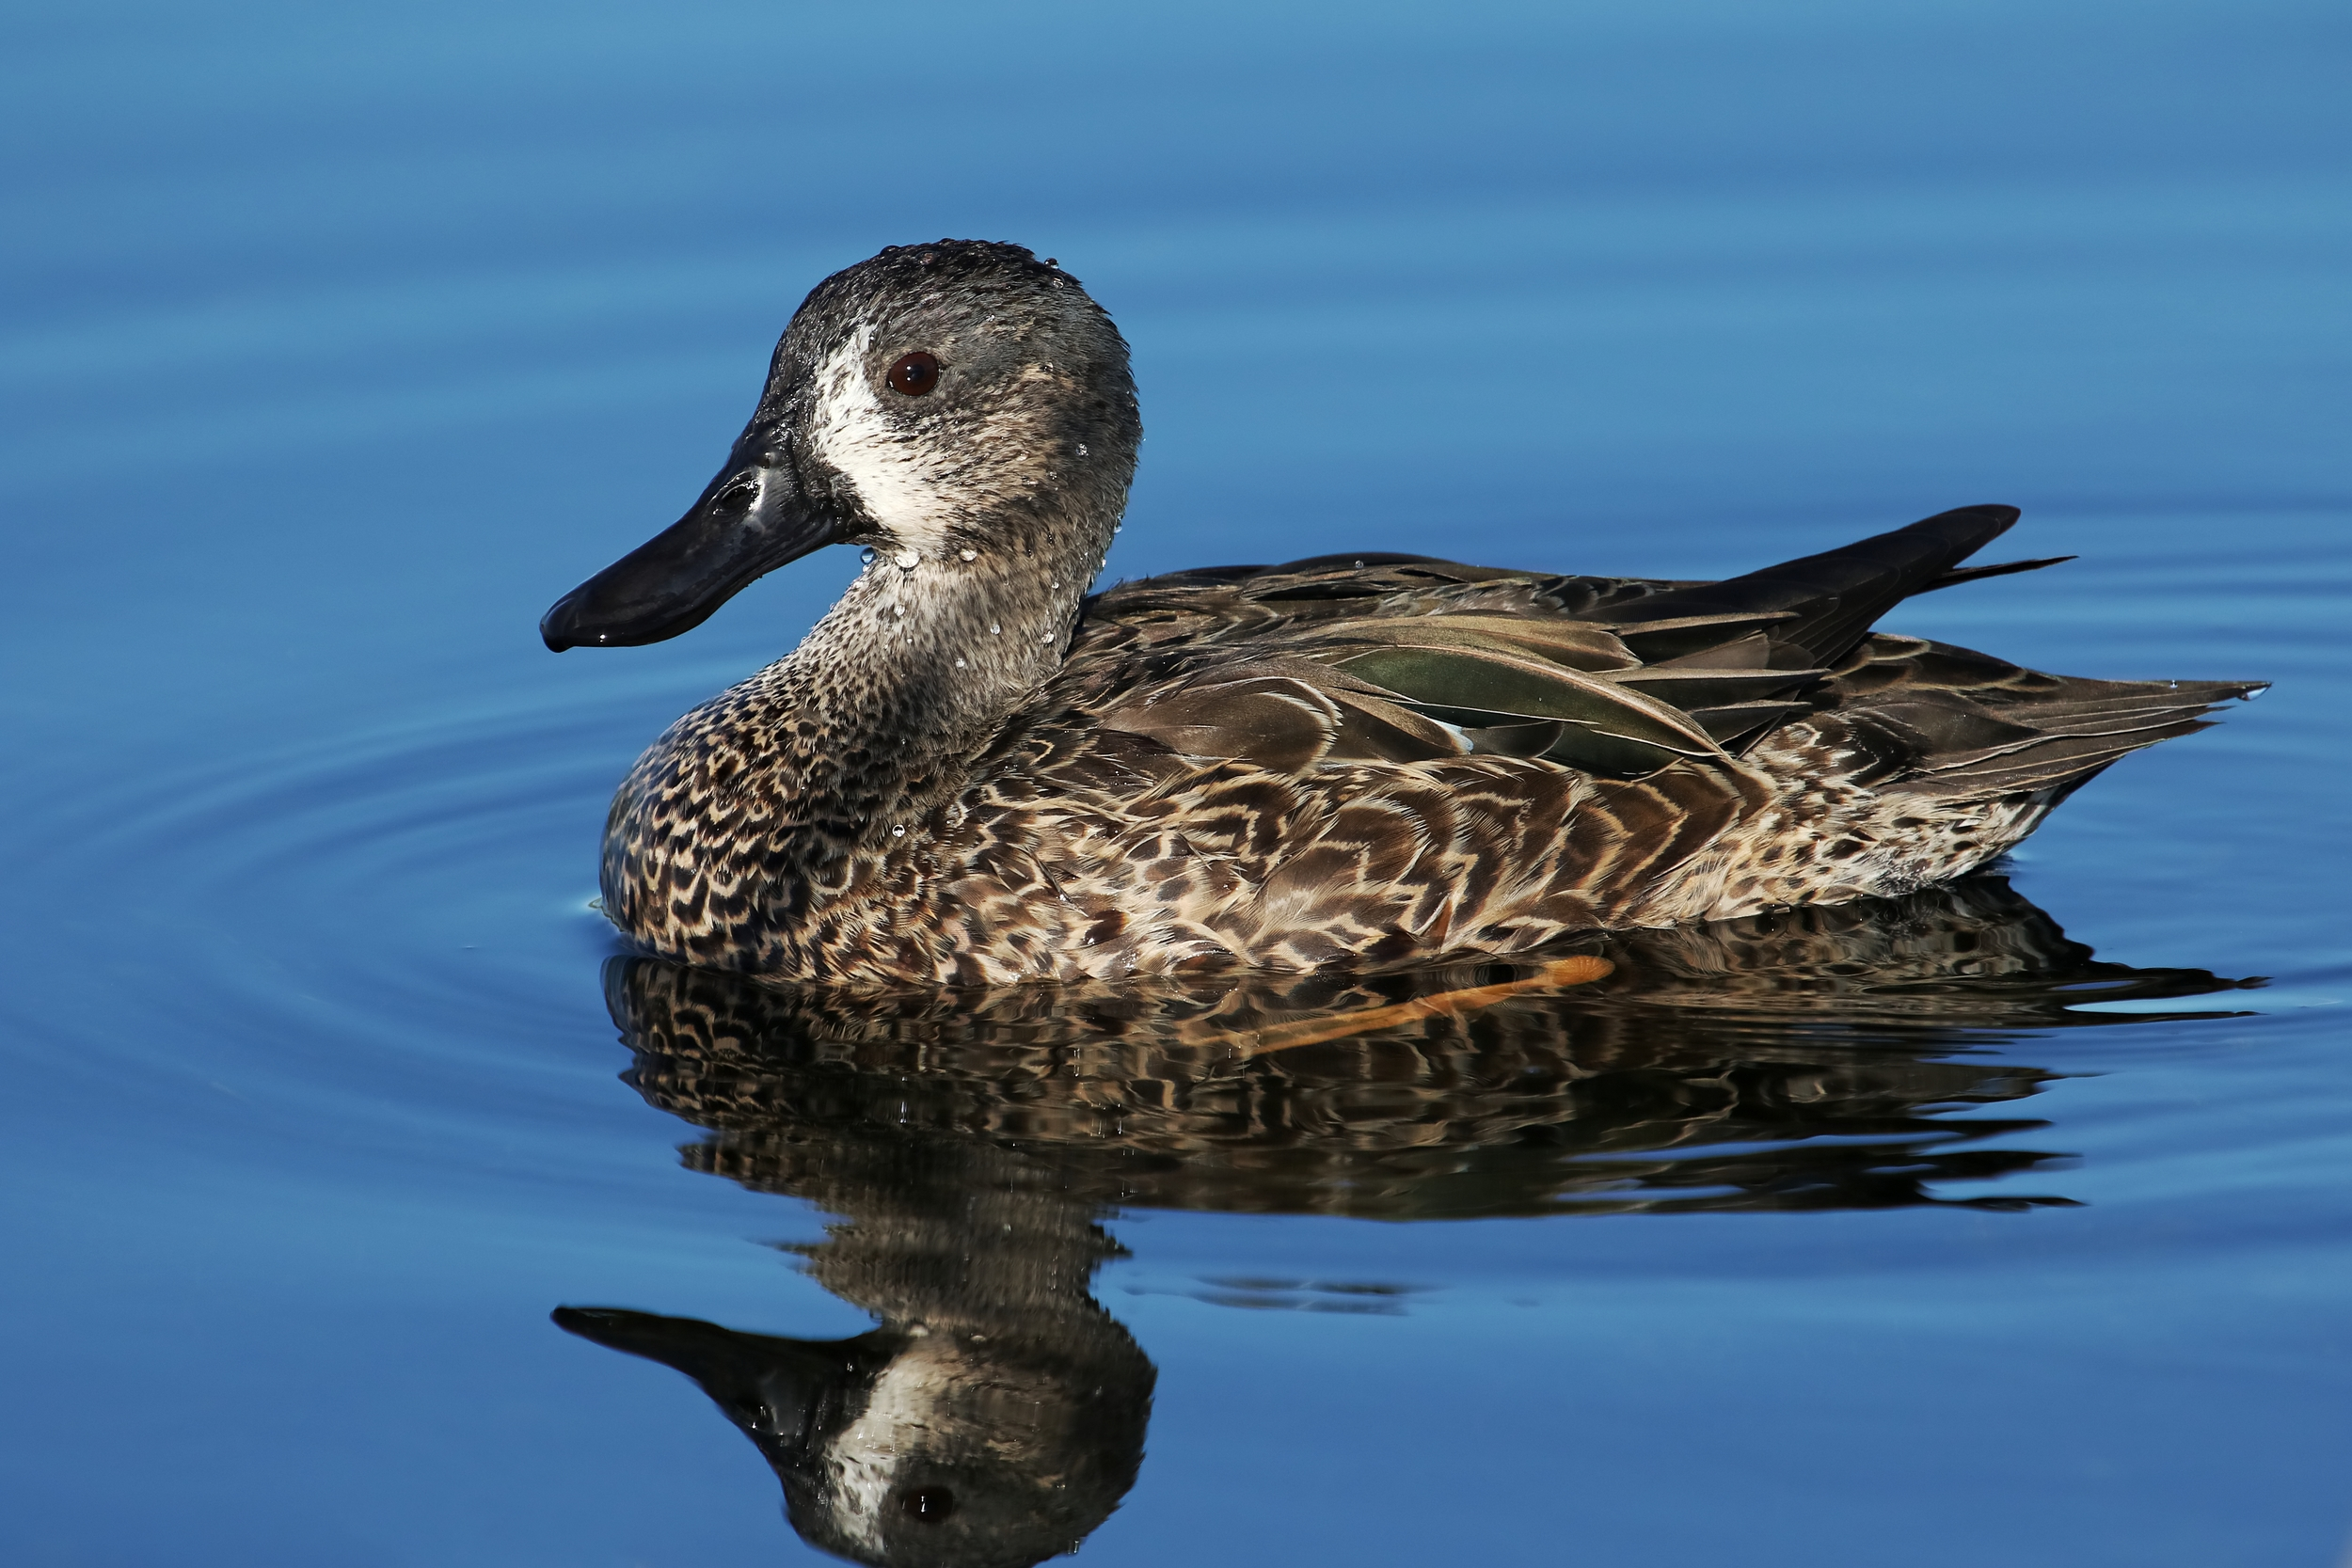 Blue-winged Teal female duck paddles precariously close to an alligator nearby.